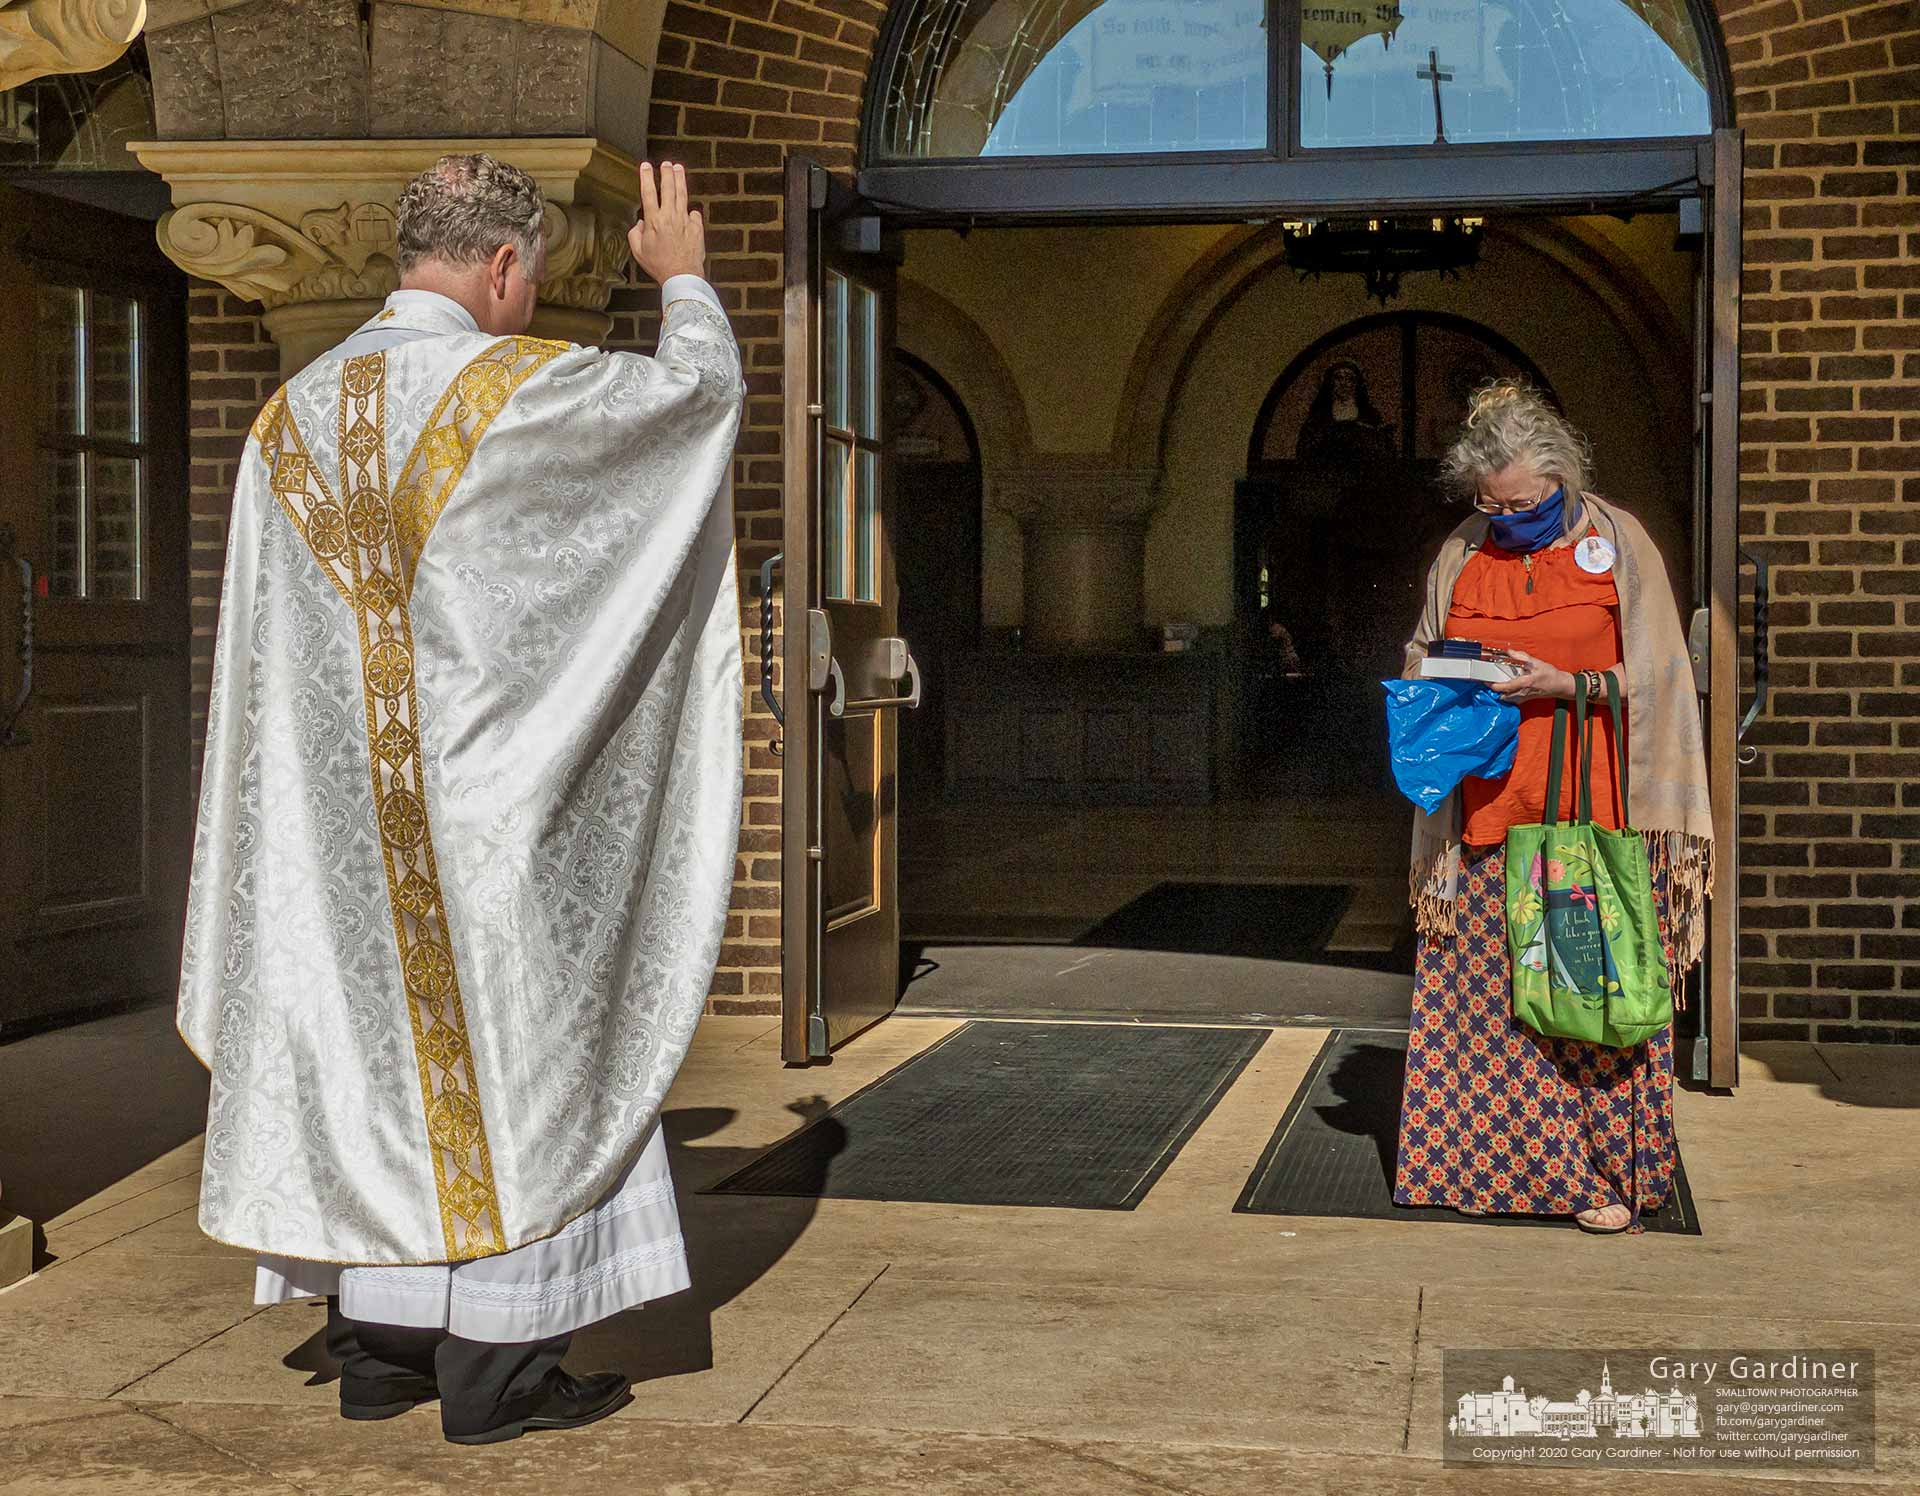 Fr. Jonathan Wilson stands at the prescribed social distance and blesses a woman's religious articles after Sunday Mass at St. Paul the Apostle Catholic Church. My Final Photo for June 7, 2020.